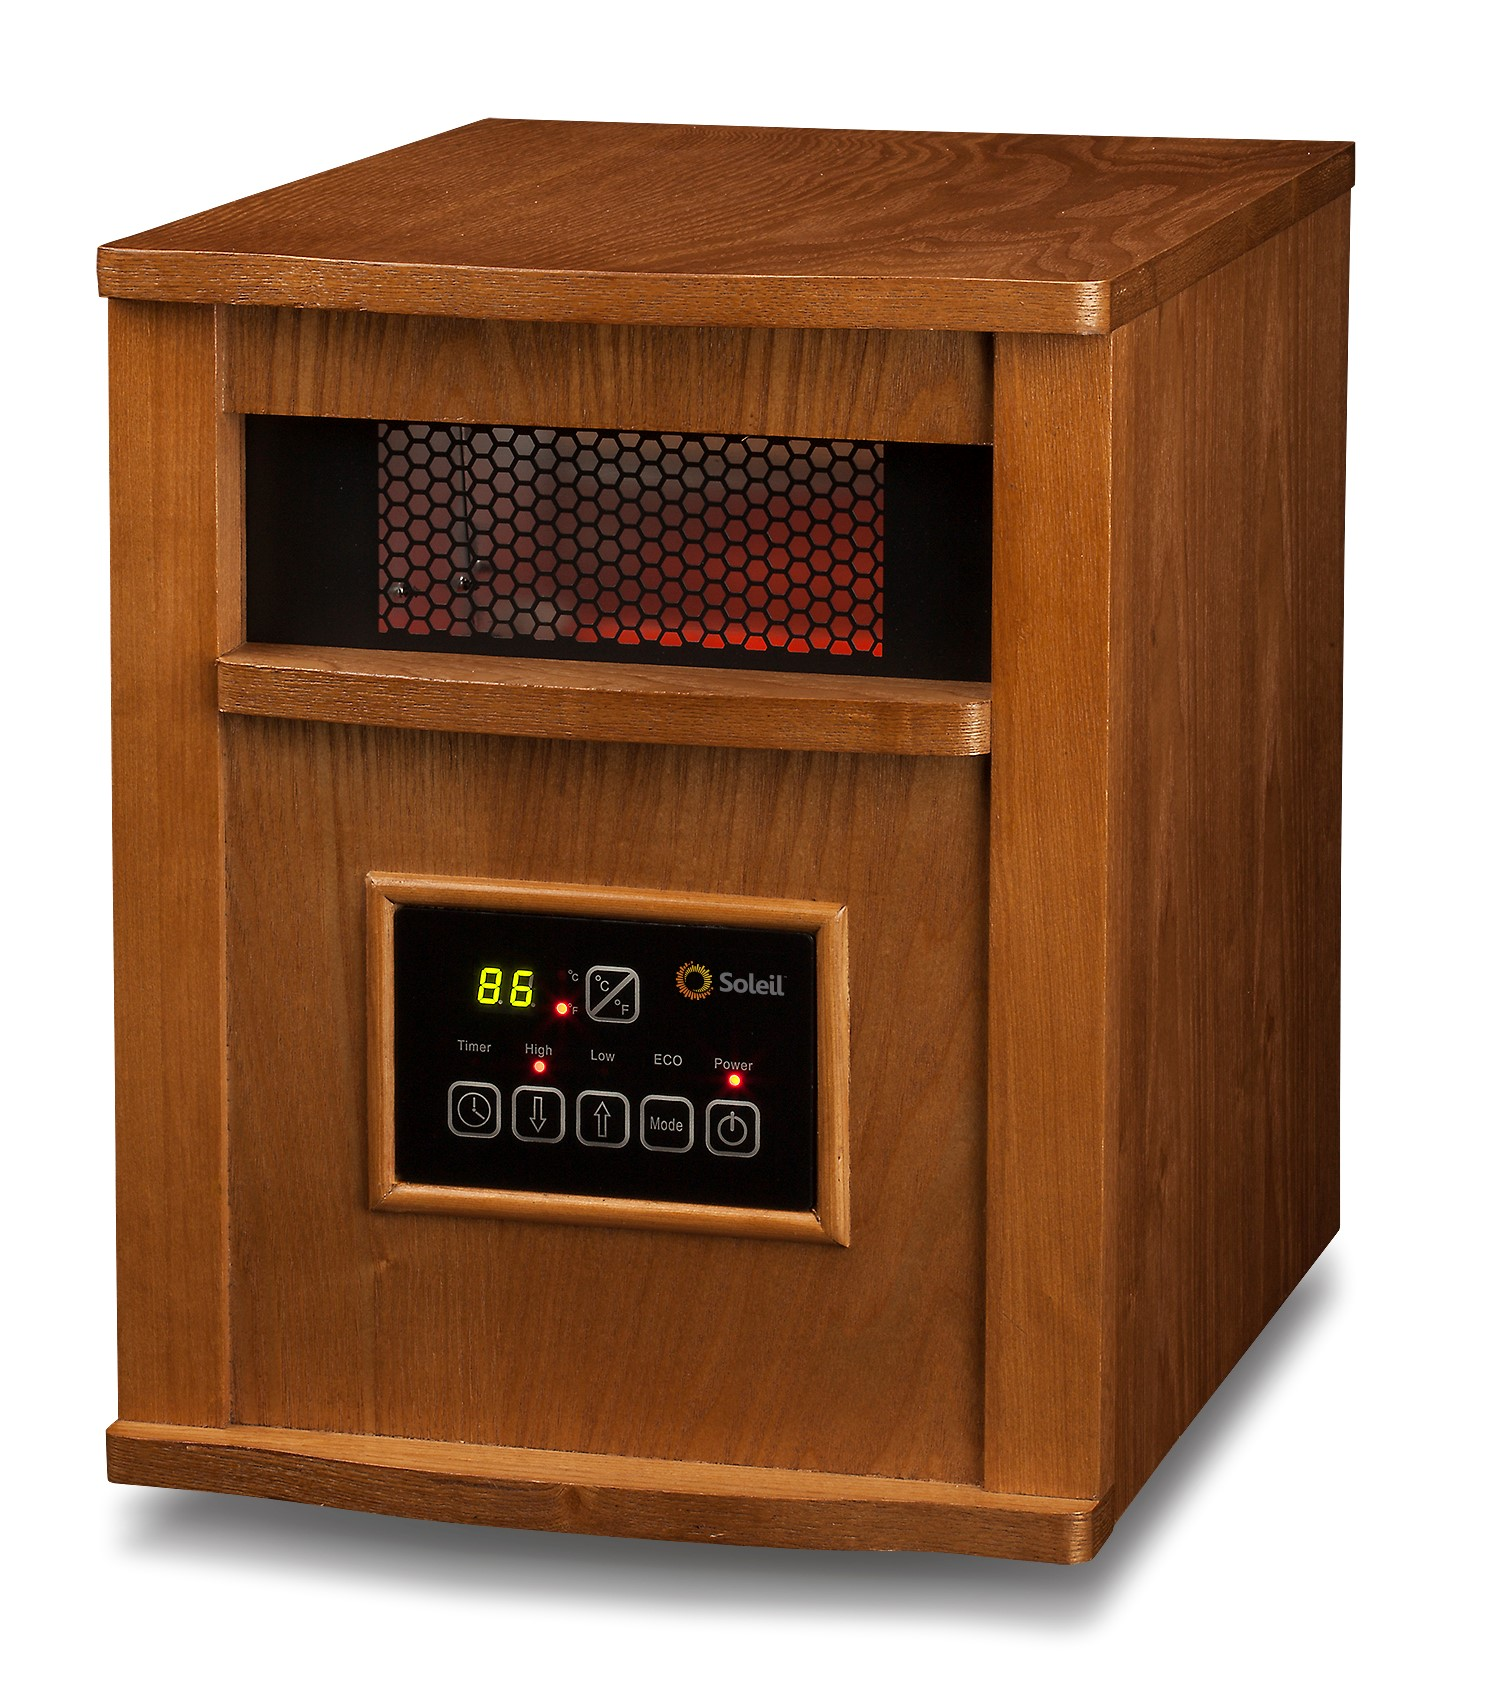 Infrared Wood Cabinet Heater WH-96H | Soleil Heaters